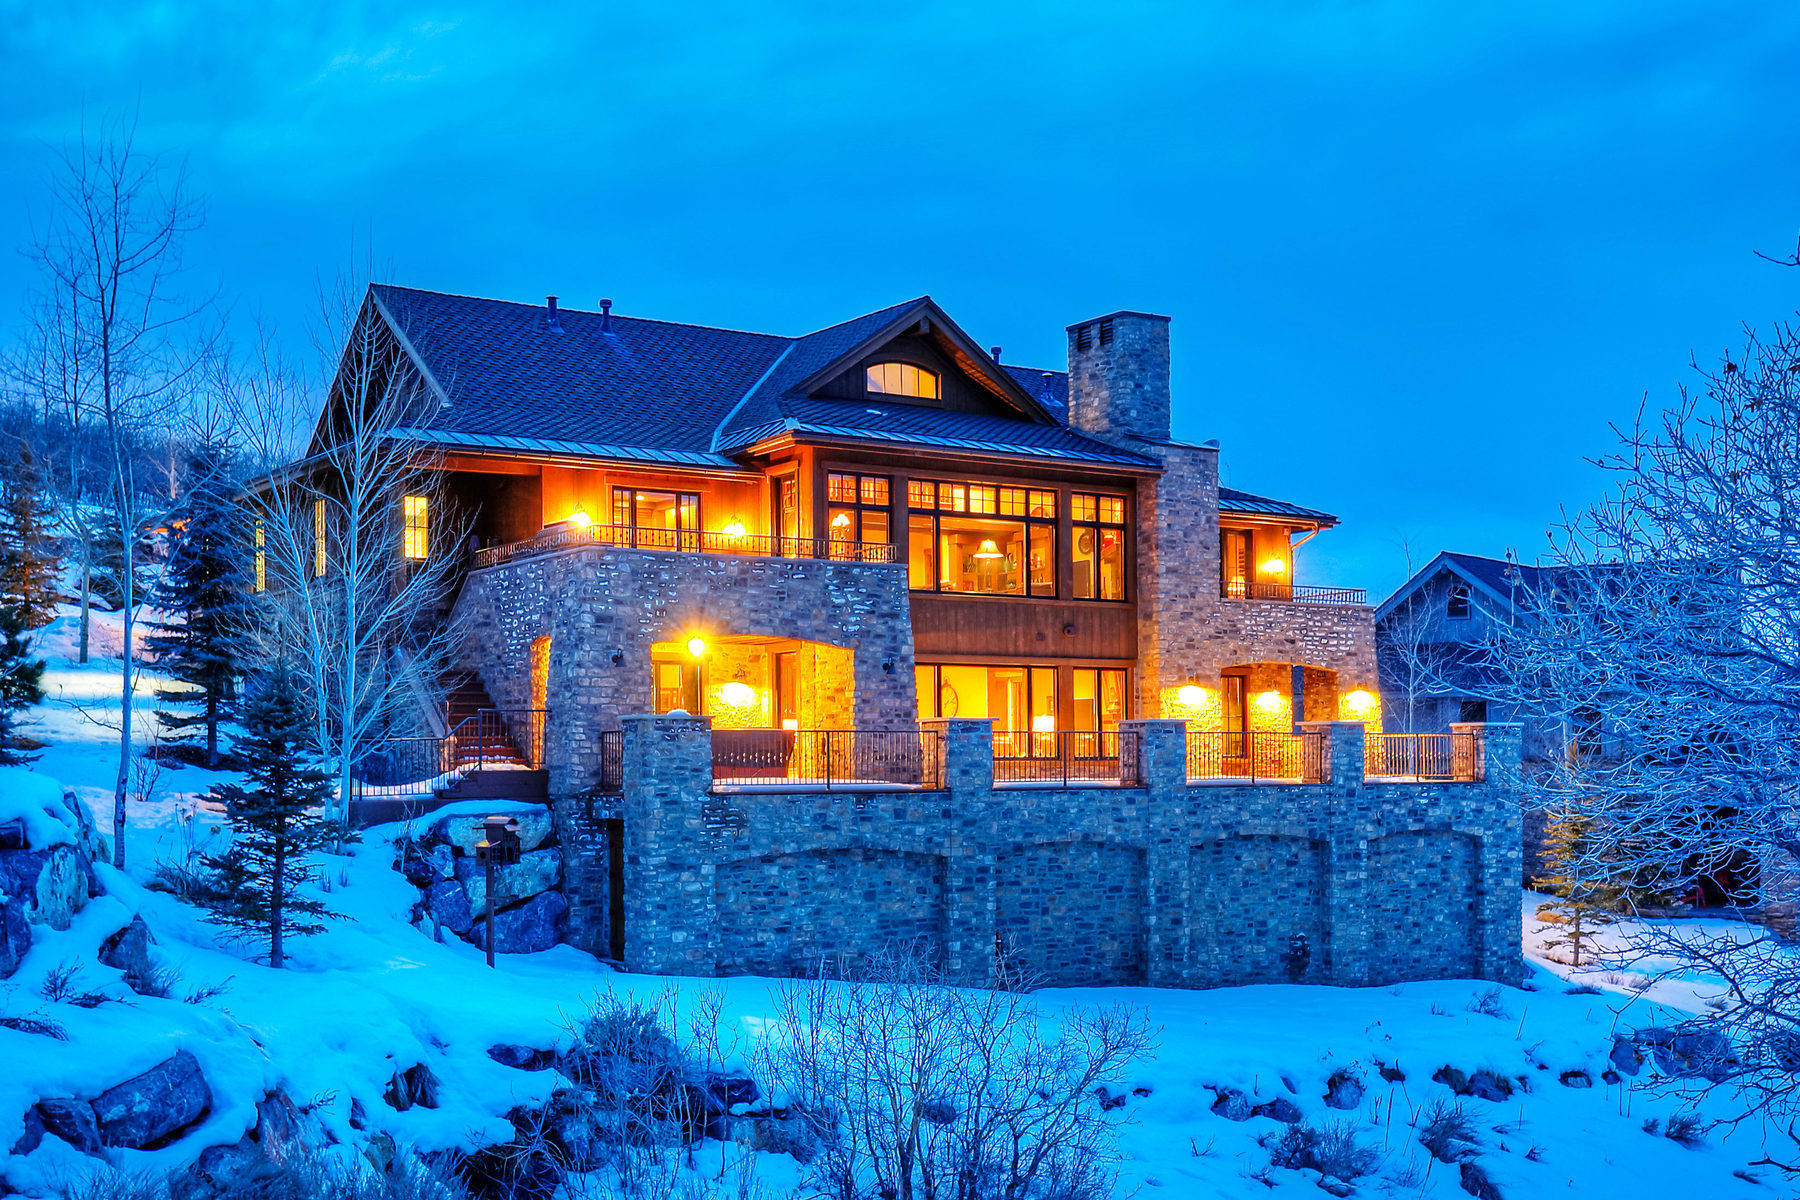 Single Family Home for Sale at Pristine Upgraded and Expanded Promontory Golf Cabin Offered Furnished! 8787 N. Ranch Club Ct Park City, Utah 84098 United States